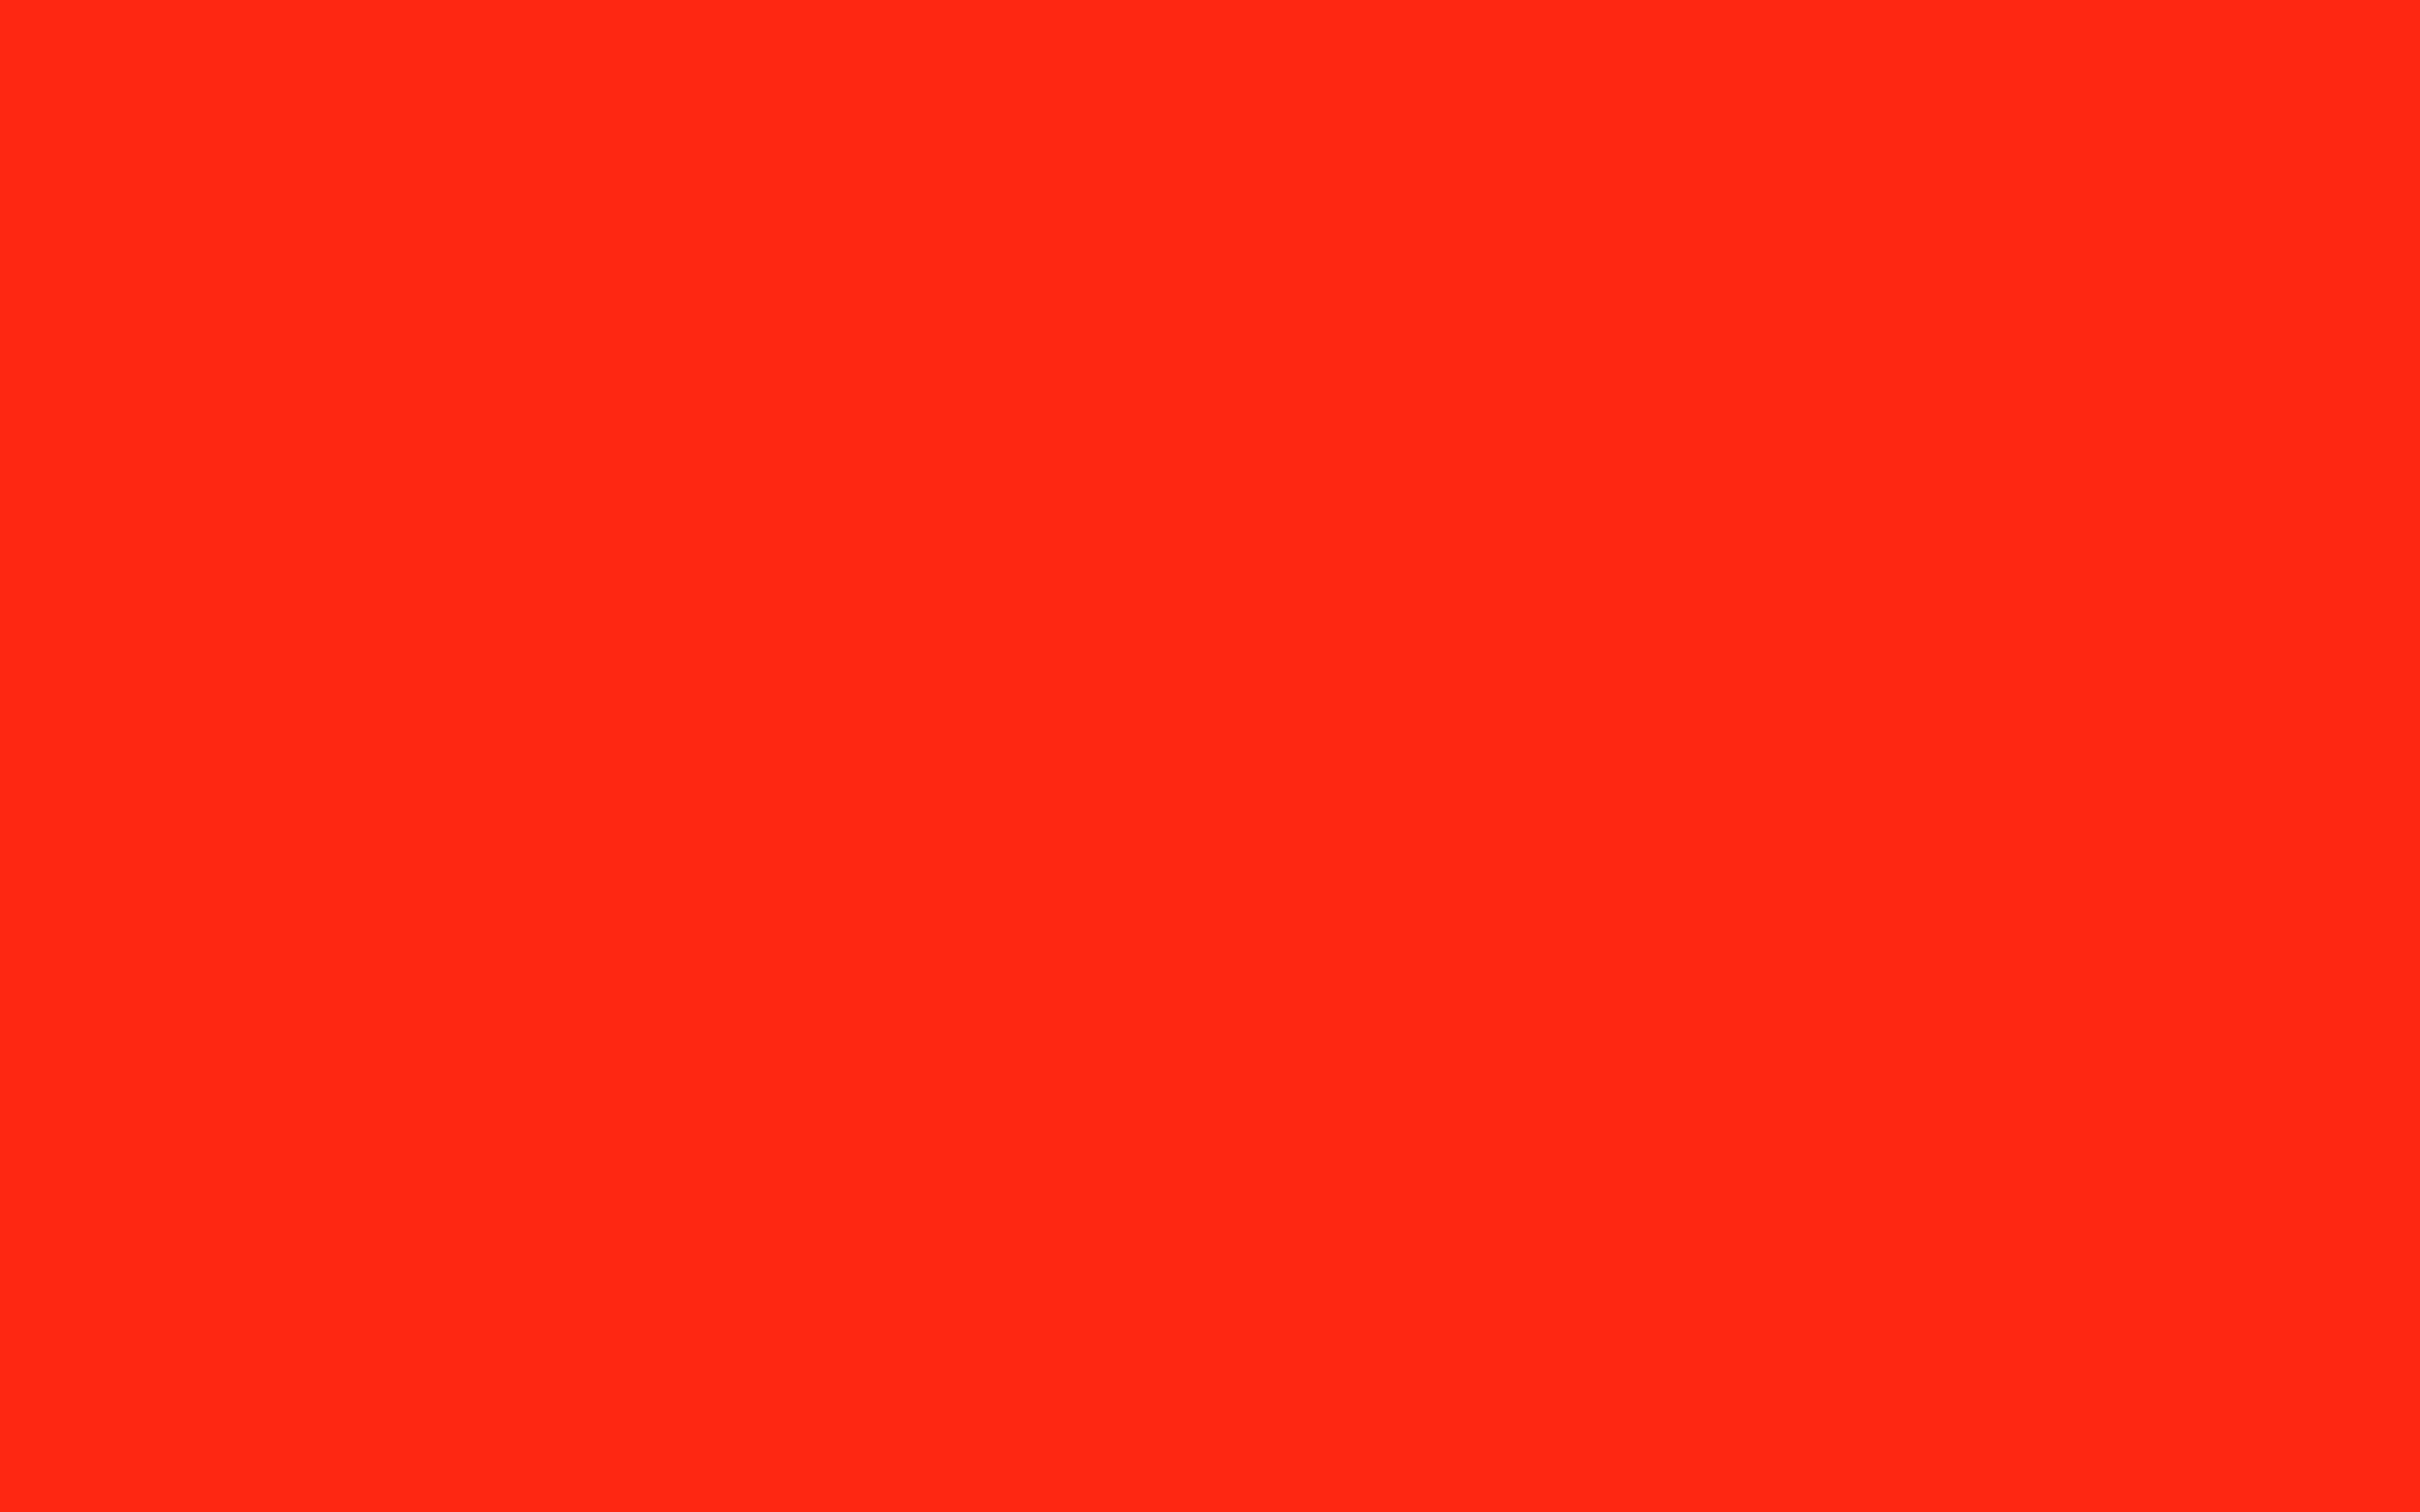 2560x1600 Red RYB Solid Color Background